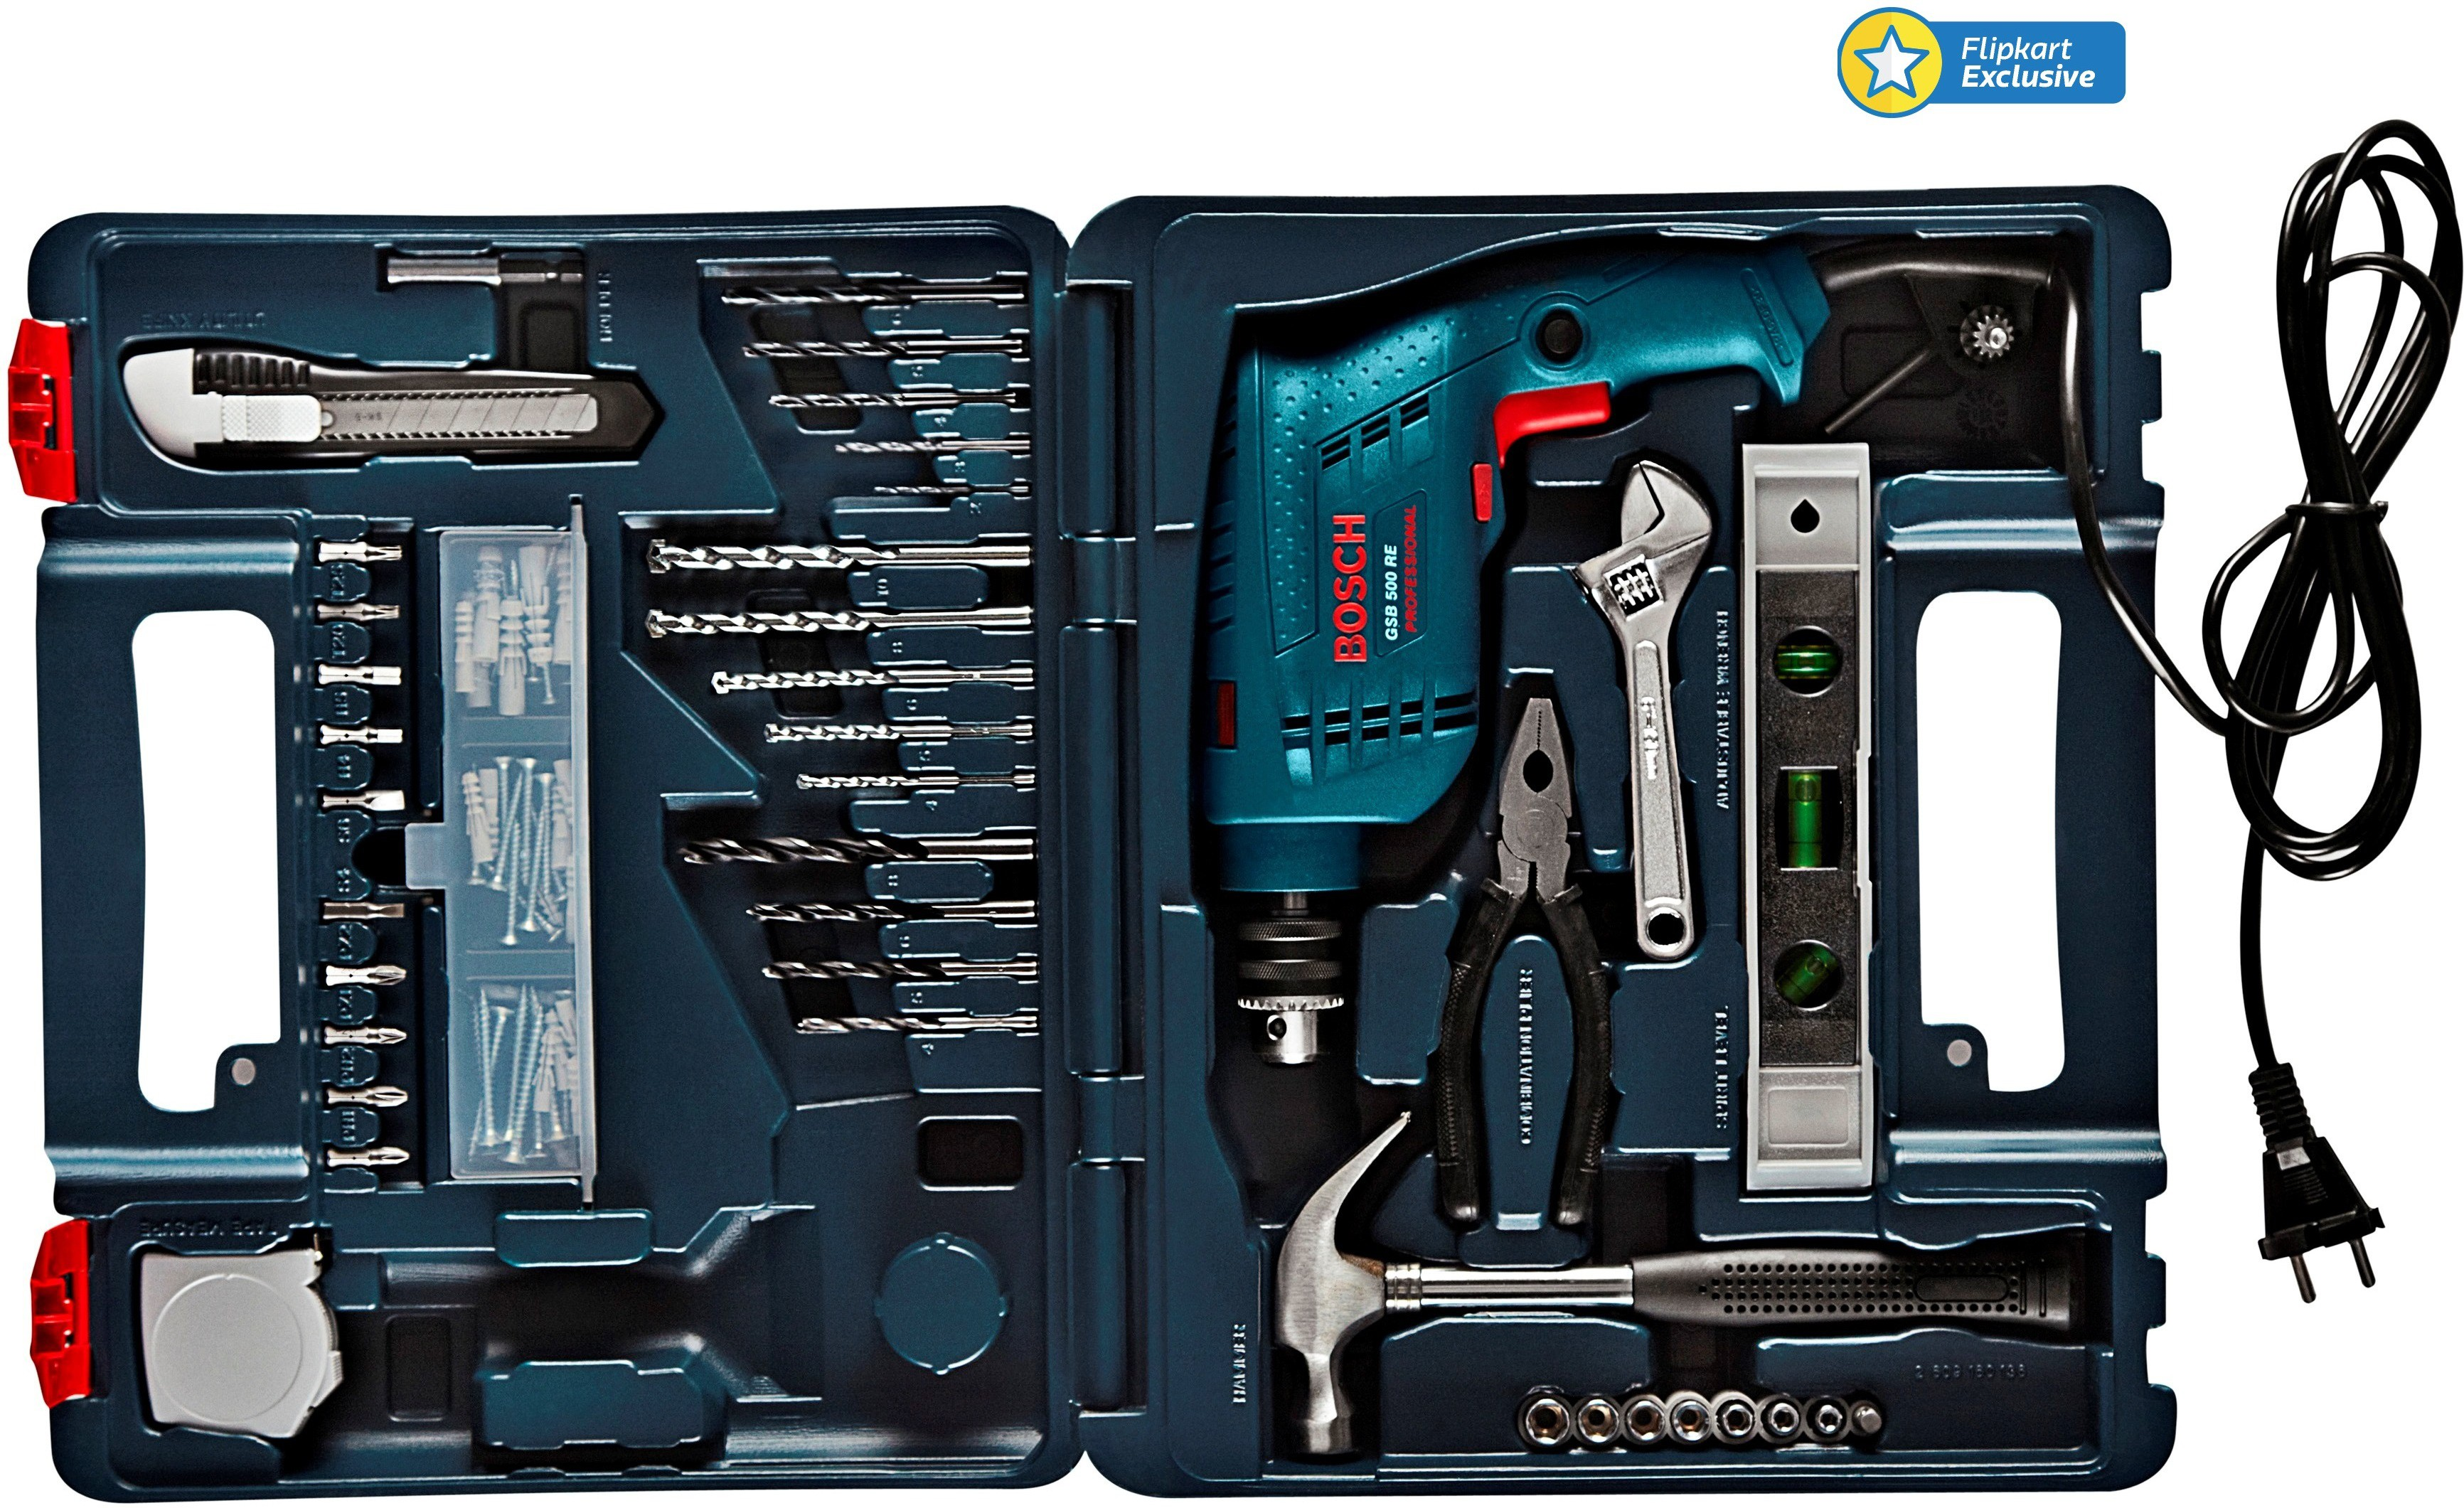 bosch gsb 500 re home tool kit power hand tool kit price in india buy bosch gsb 500 re home. Black Bedroom Furniture Sets. Home Design Ideas